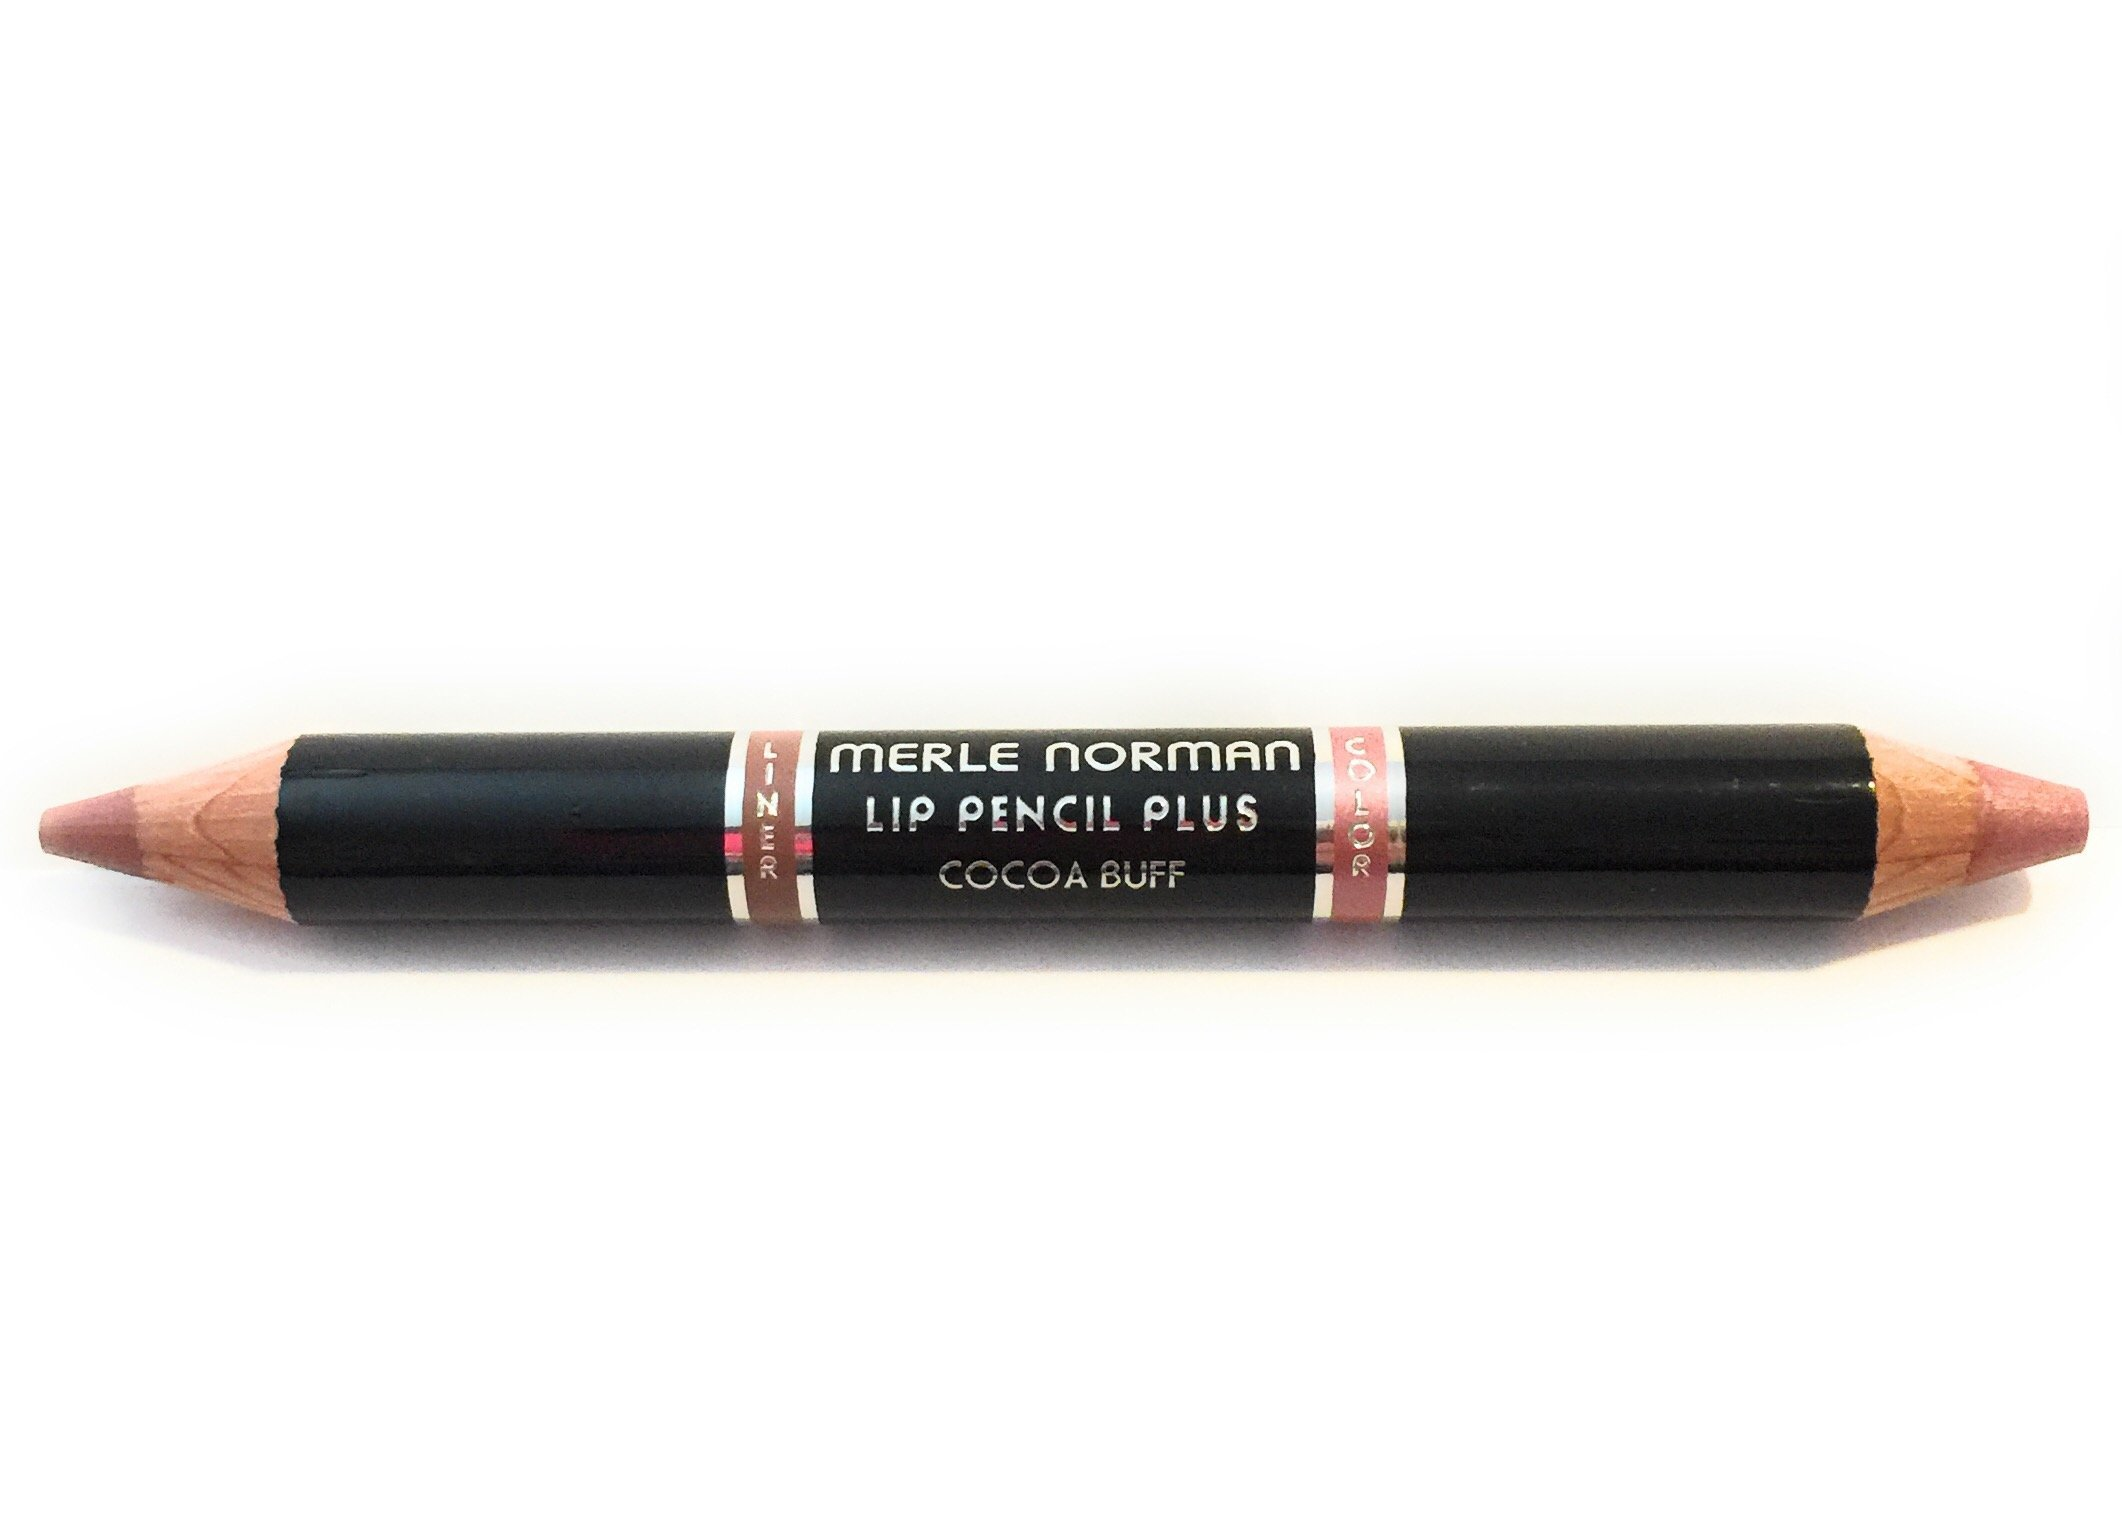 Merle Norman Lip Pencil Plus - Cocoa Buff by Merle Norman